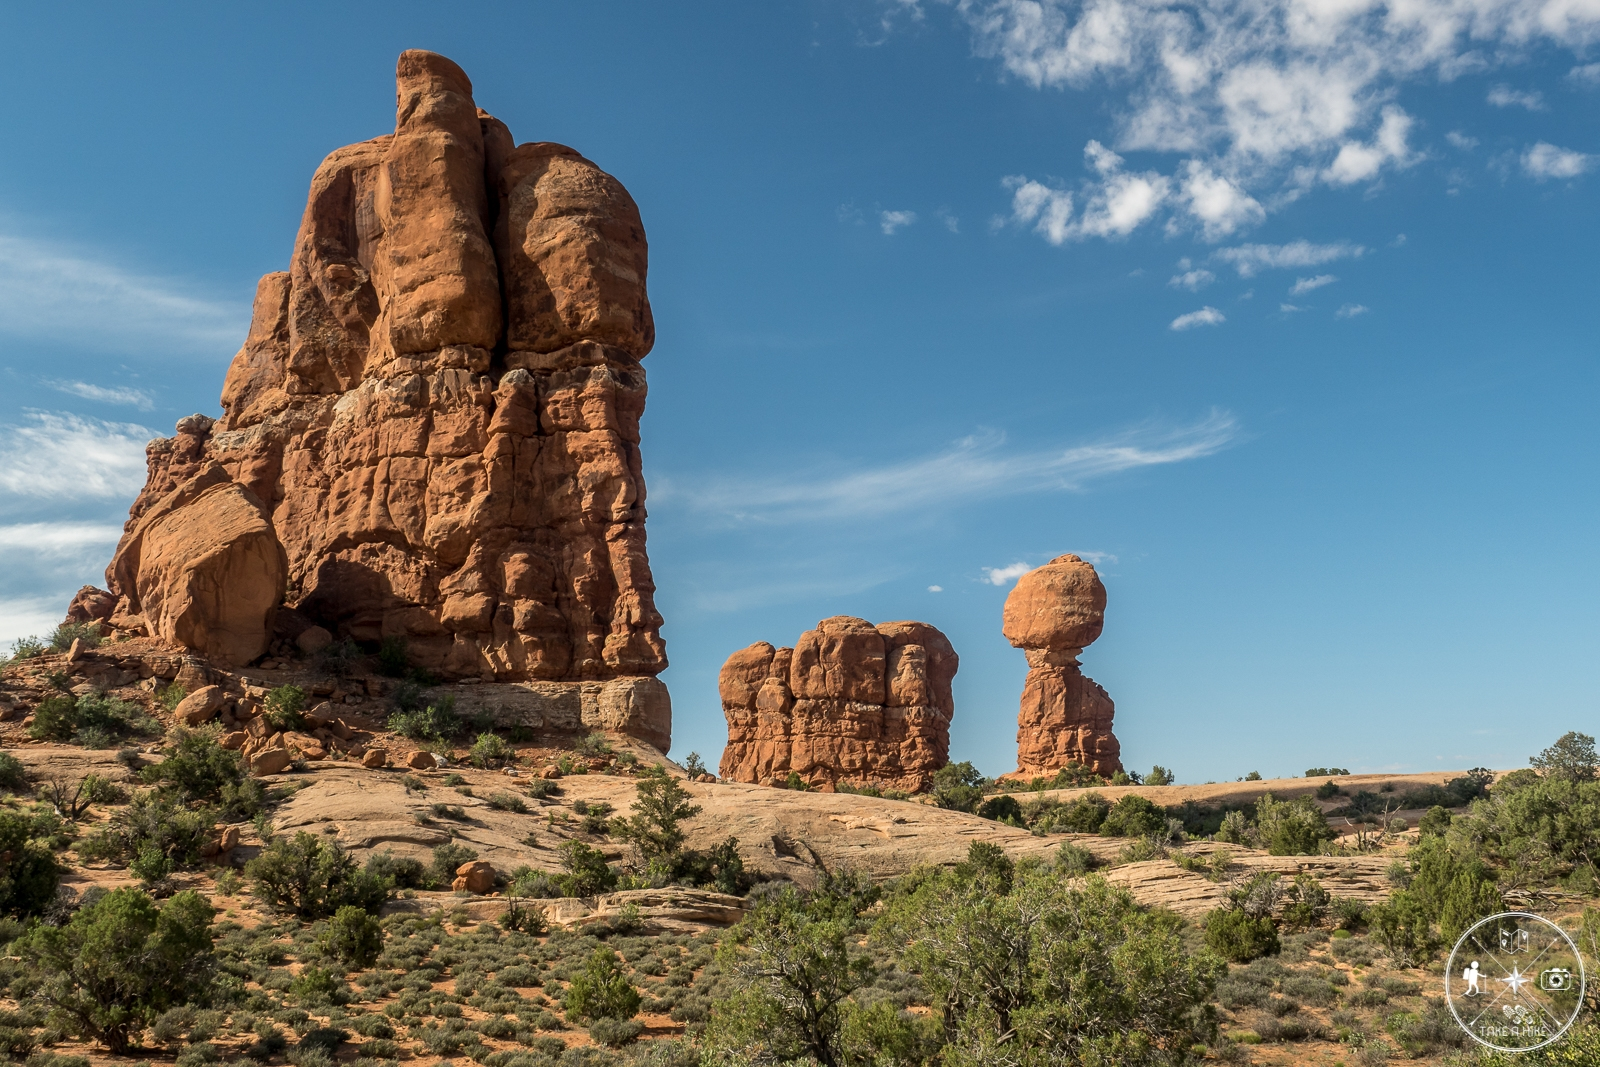 Arches NP Scenic Drive - Balanced Rock